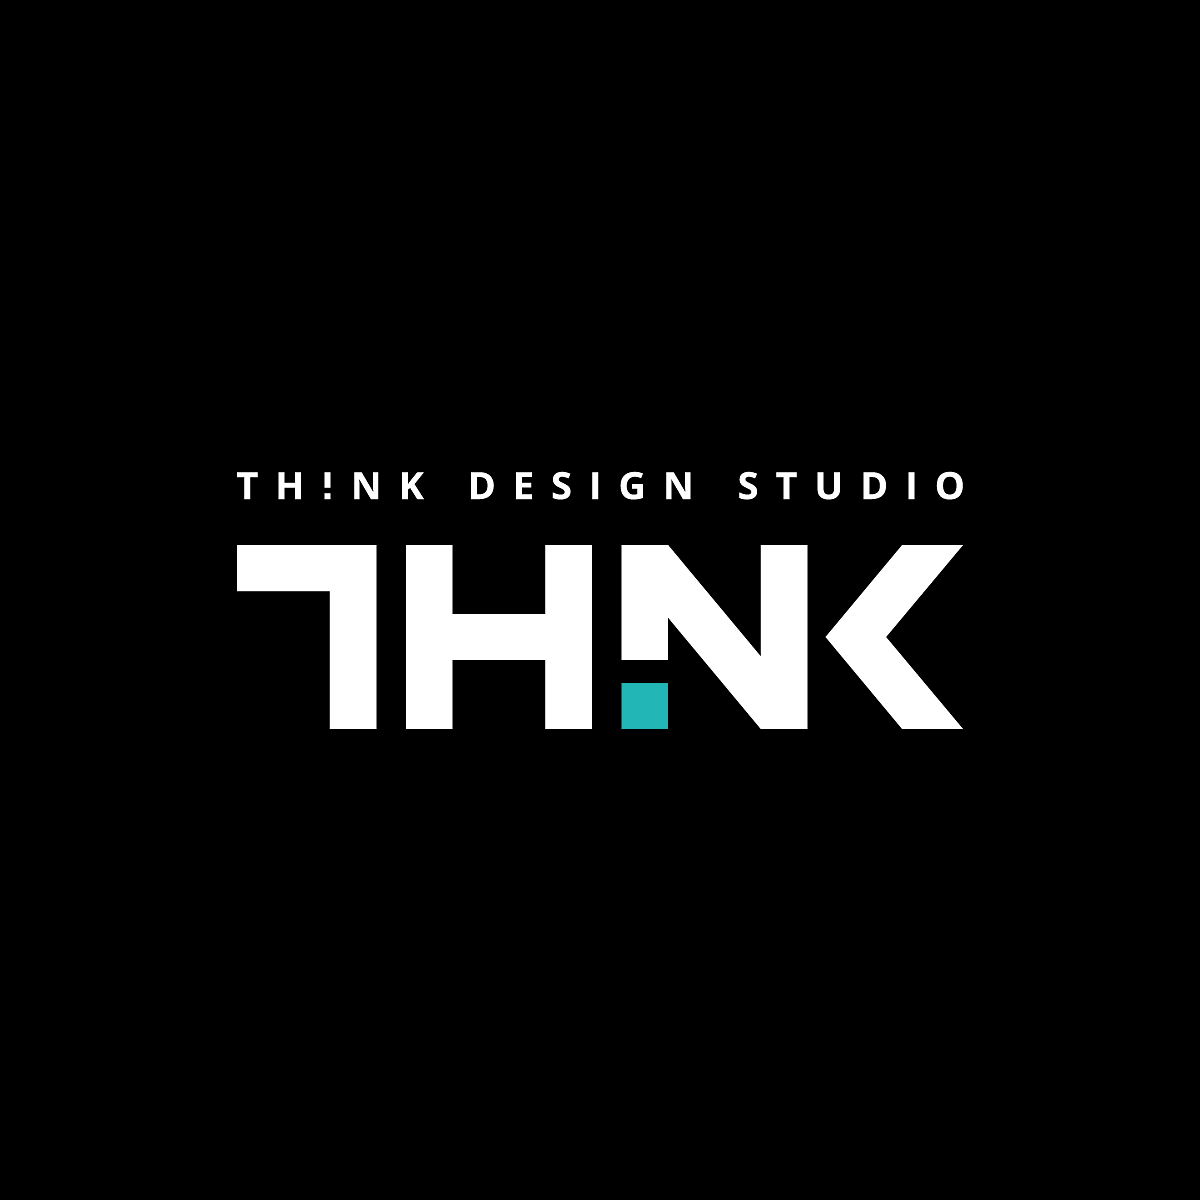 TH!NK design studio